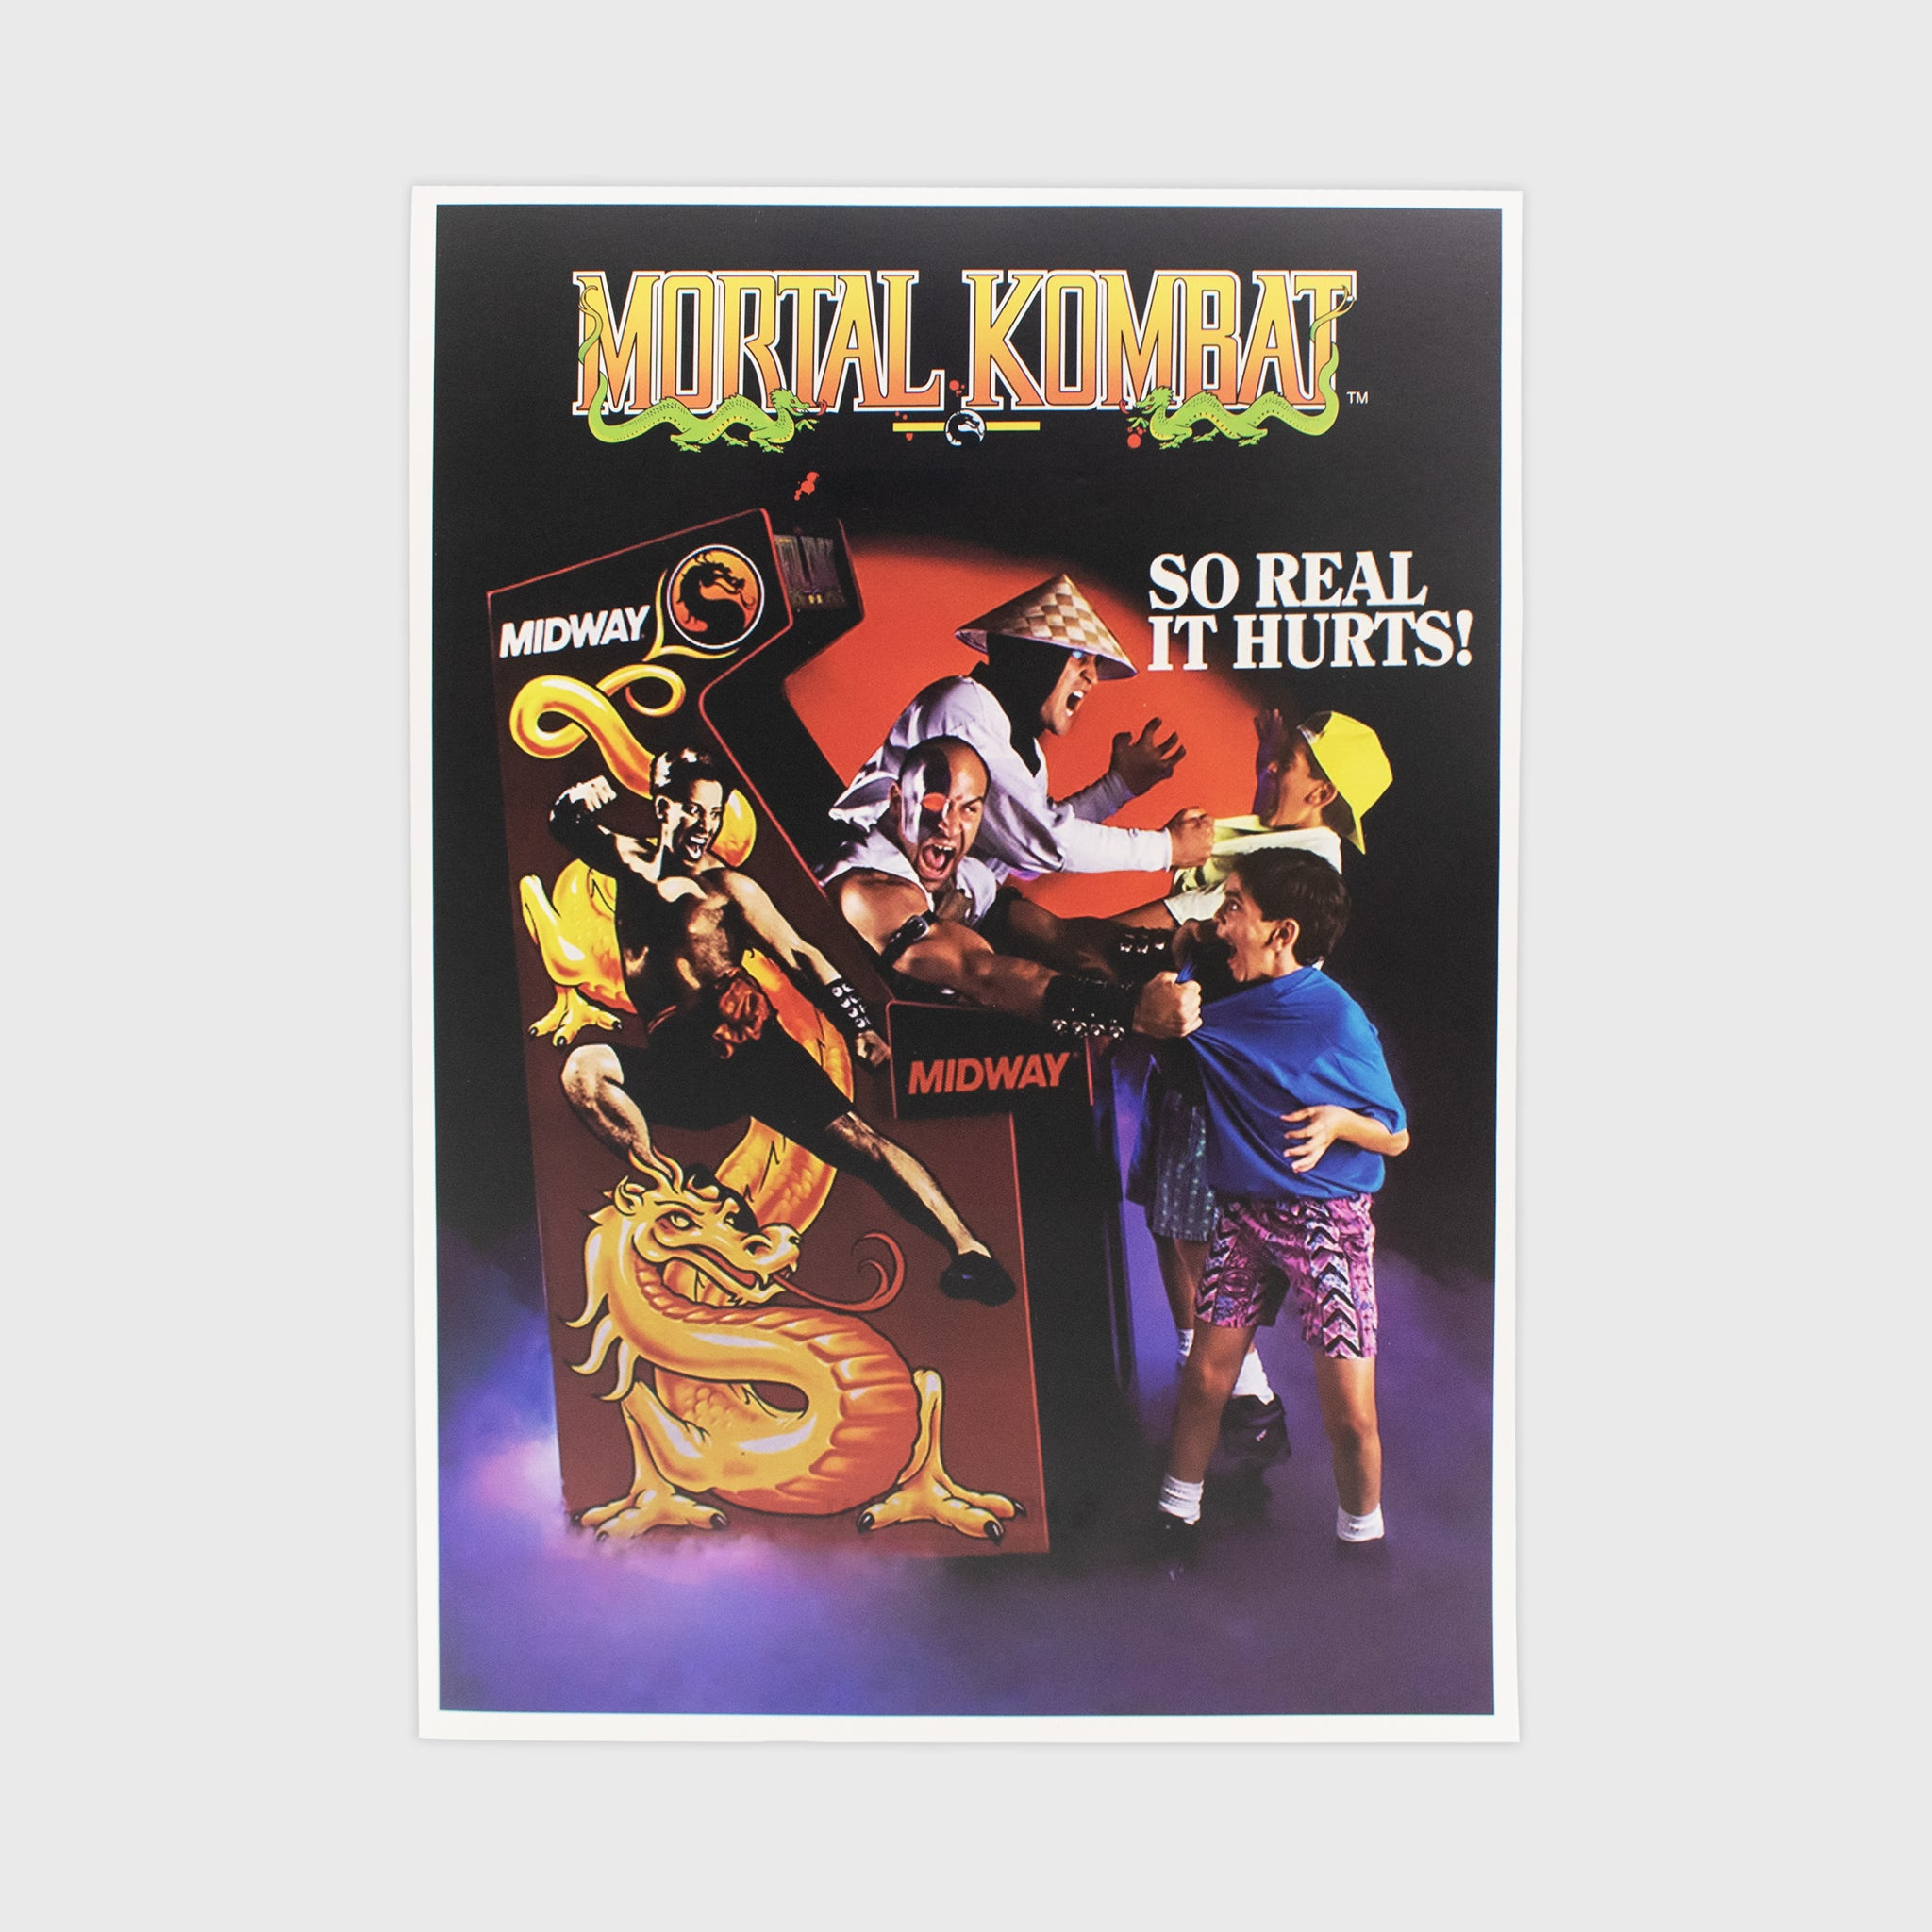 mortal kombat collector box collectible exclusive poster art print culturefly